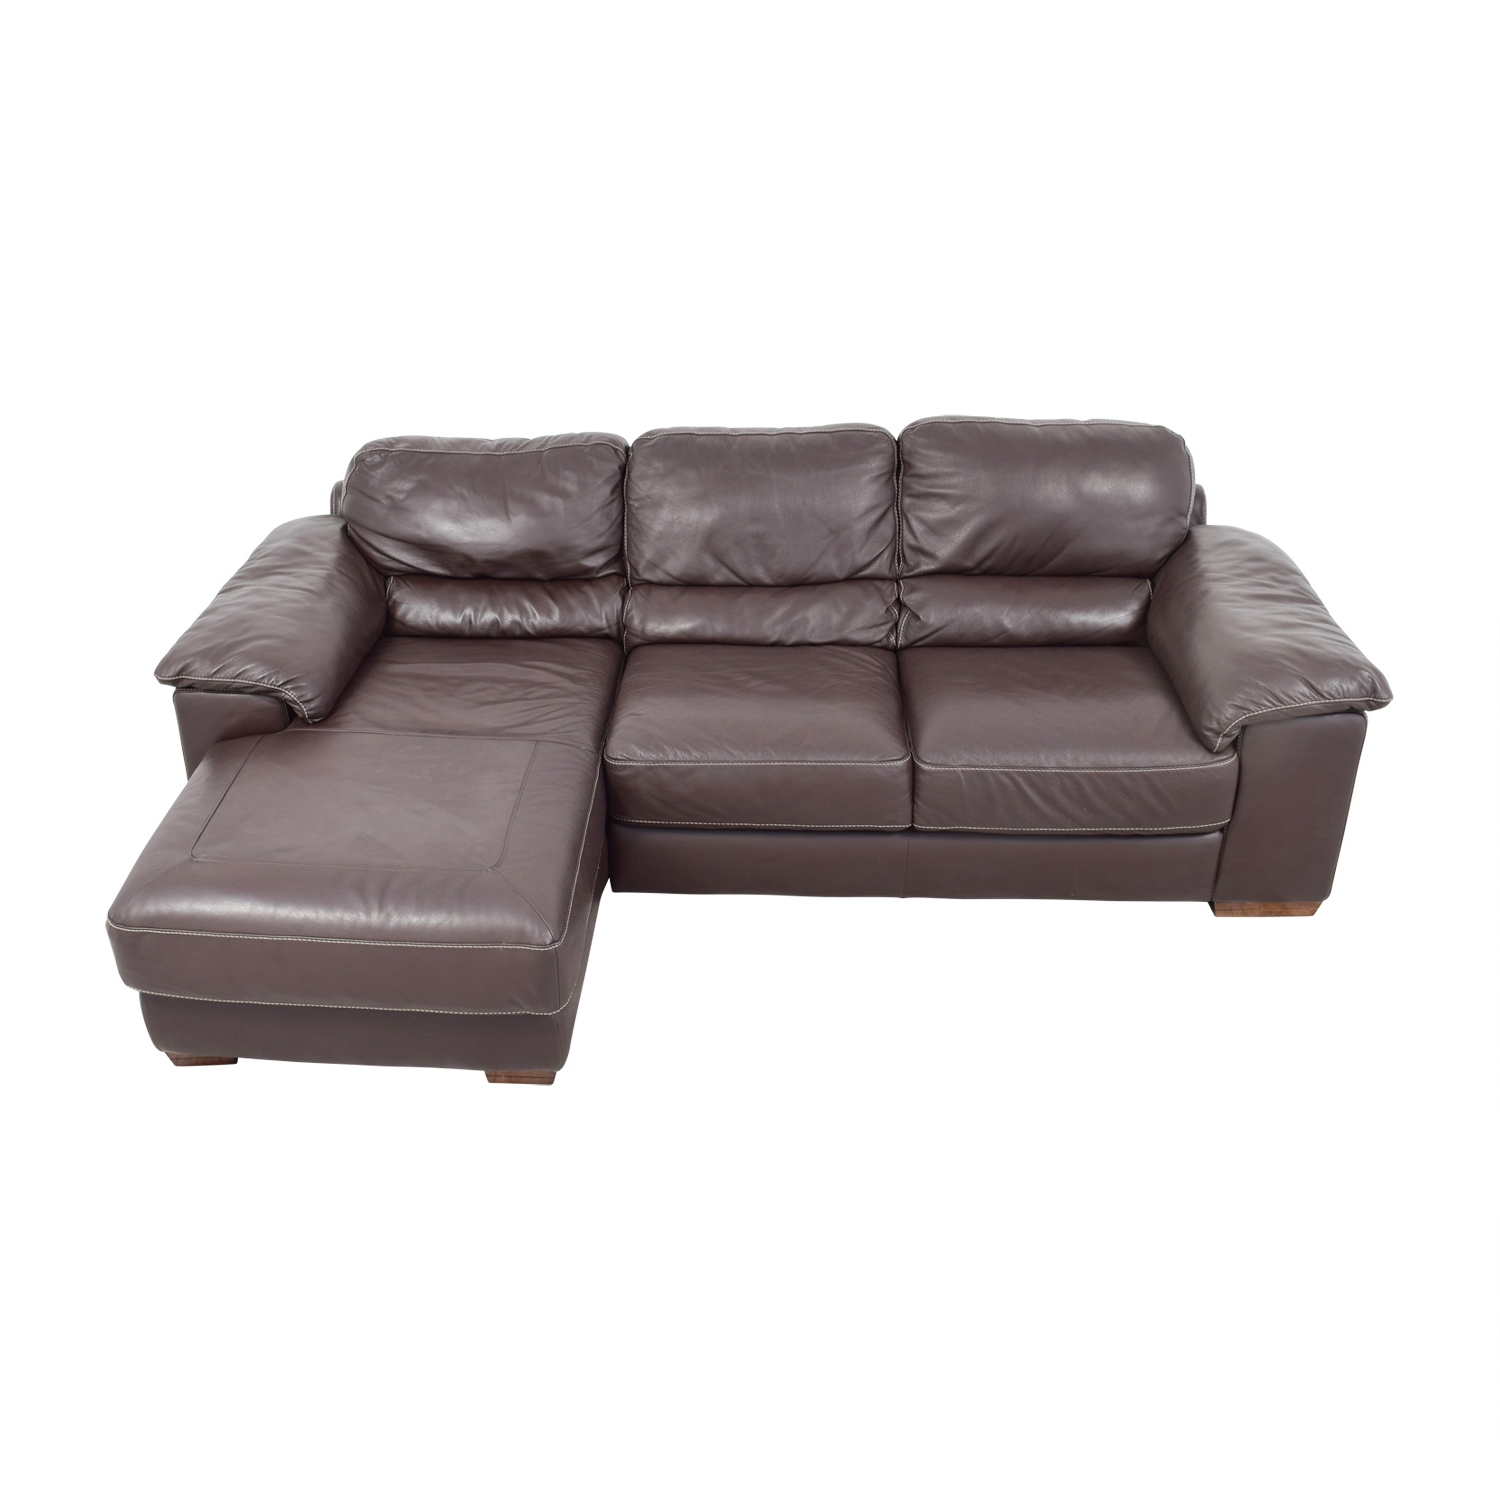 [%54% Off – Raymour & Flanagan Raymour & Flanagan Cindy Crawford With Regard To Famous Leather Chaise Sectionals|Leather Chaise Sectionals Inside 2017 54% Off – Raymour & Flanagan Raymour & Flanagan Cindy Crawford|Widely Used Leather Chaise Sectionals For 54% Off – Raymour & Flanagan Raymour & Flanagan Cindy Crawford|2018 54% Off – Raymour & Flanagan Raymour & Flanagan Cindy Crawford Inside Leather Chaise Sectionals%] (View 1 of 15)